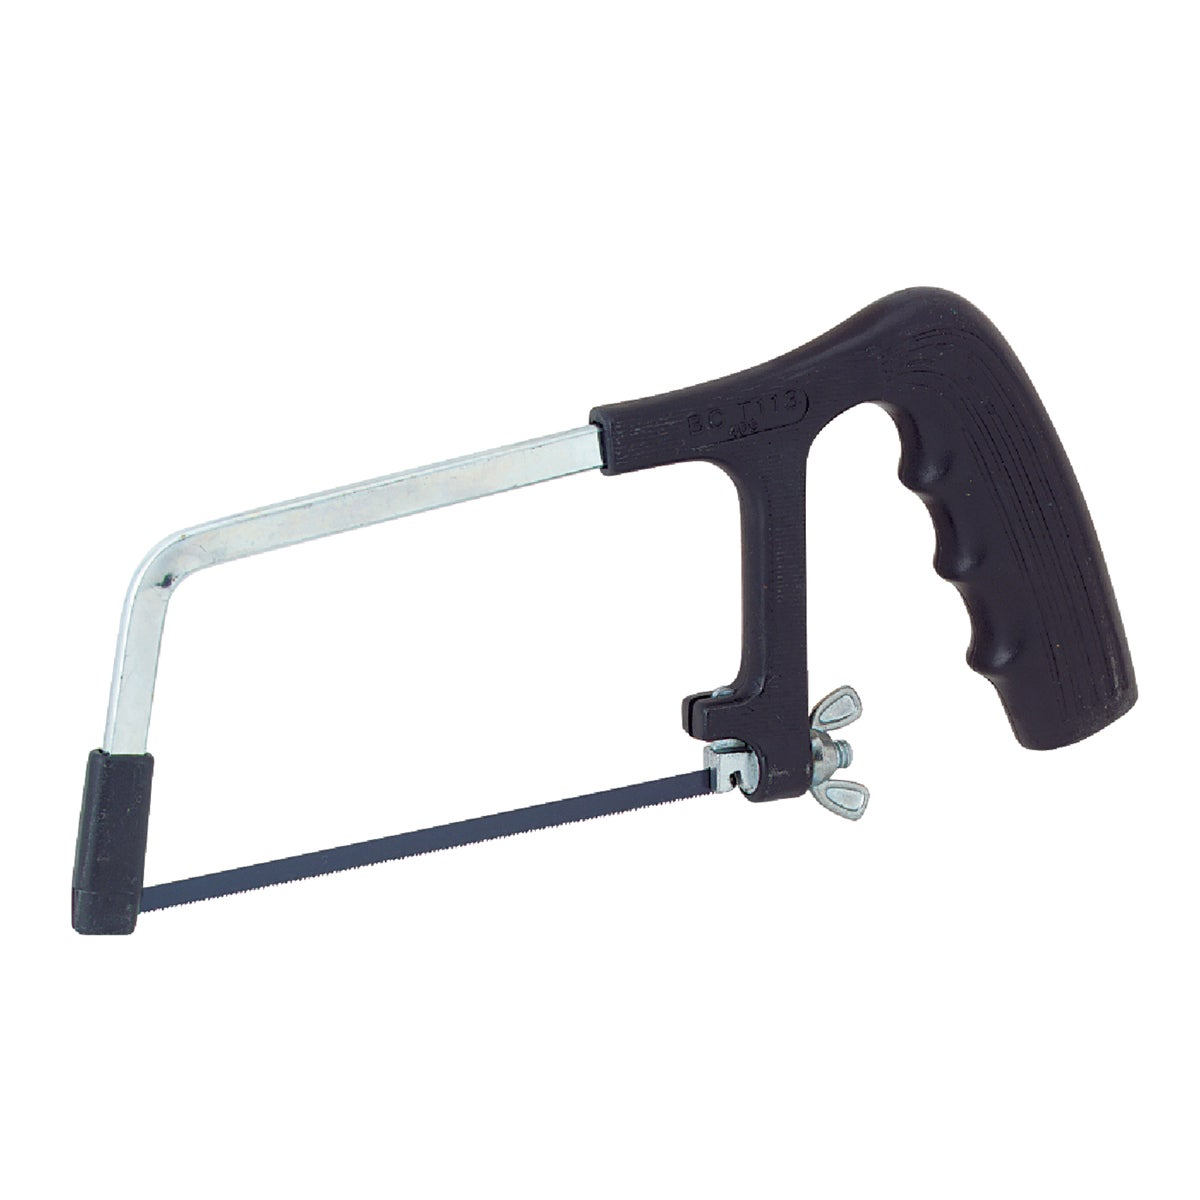 MINI HACKSAW - PST113 by Cobra Products Inc